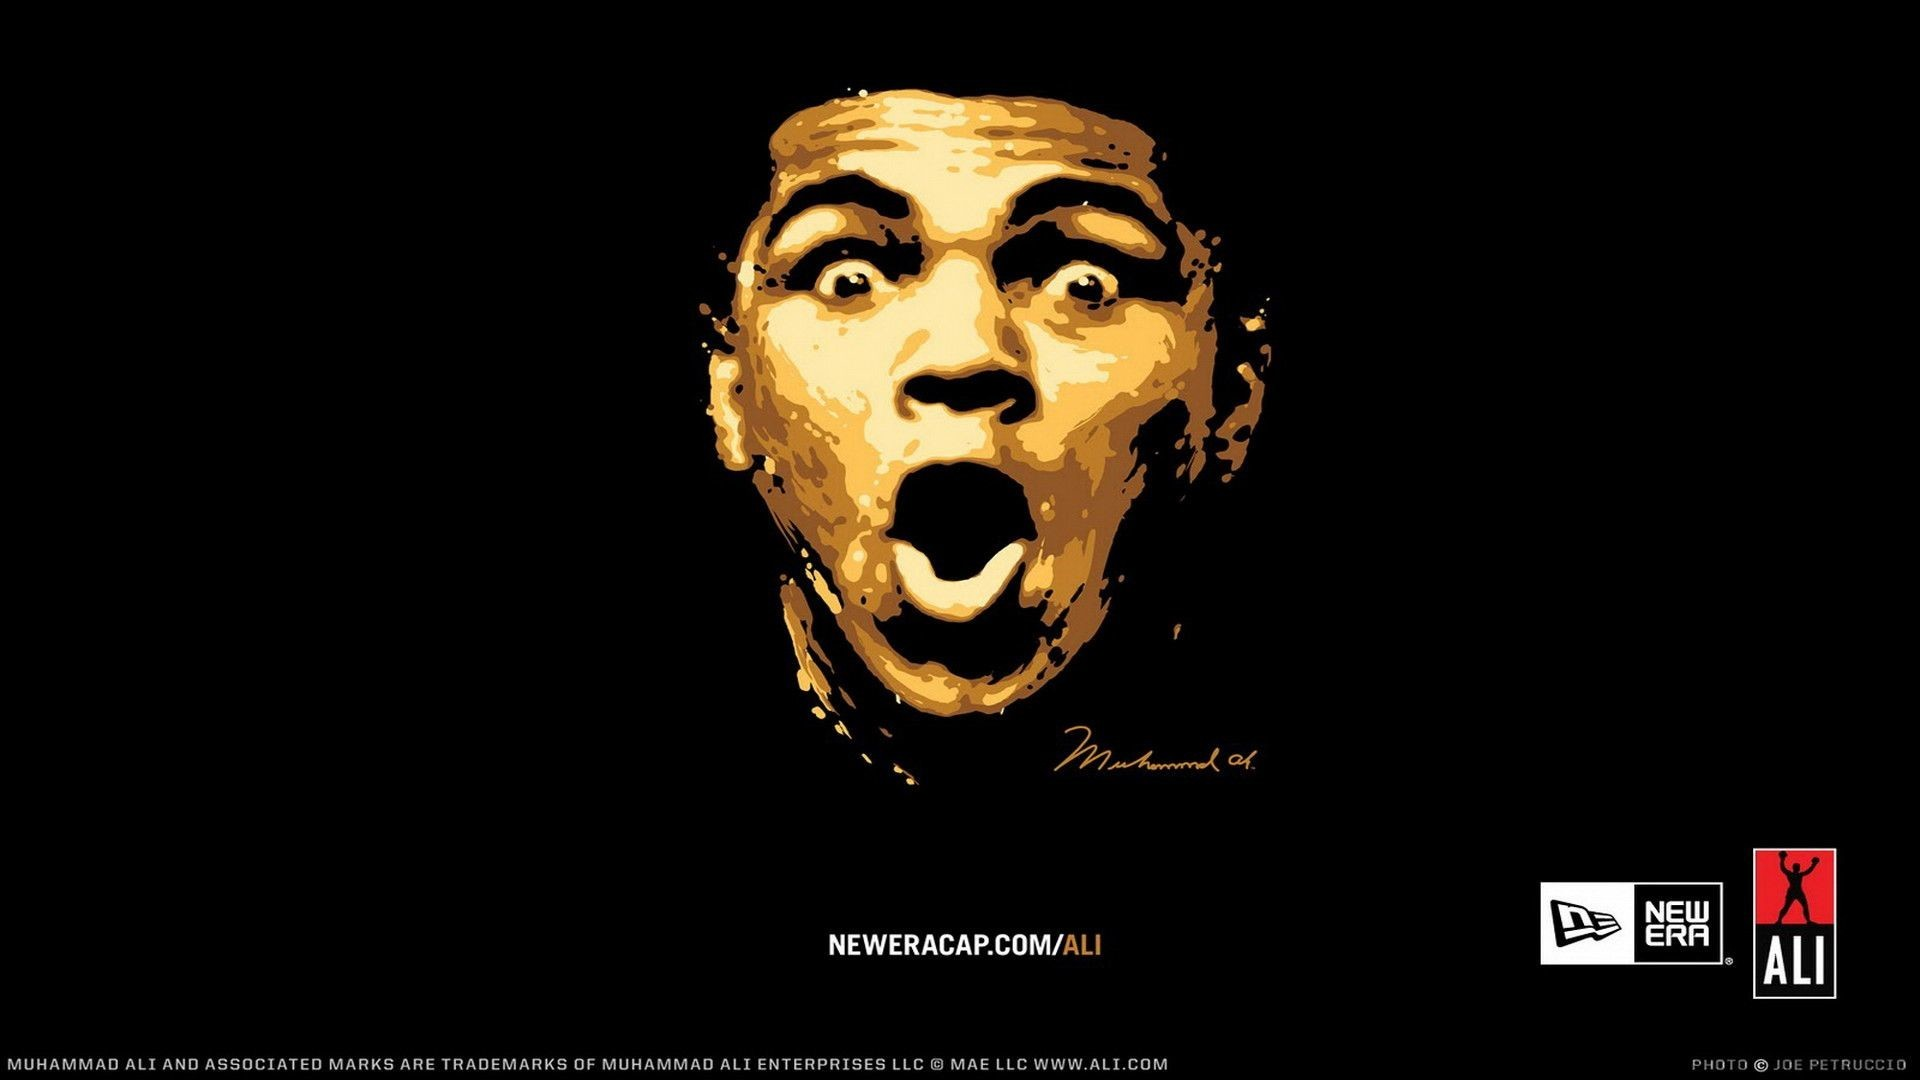 1920x1080 Muhammad Ali Wallpaper Pictures .